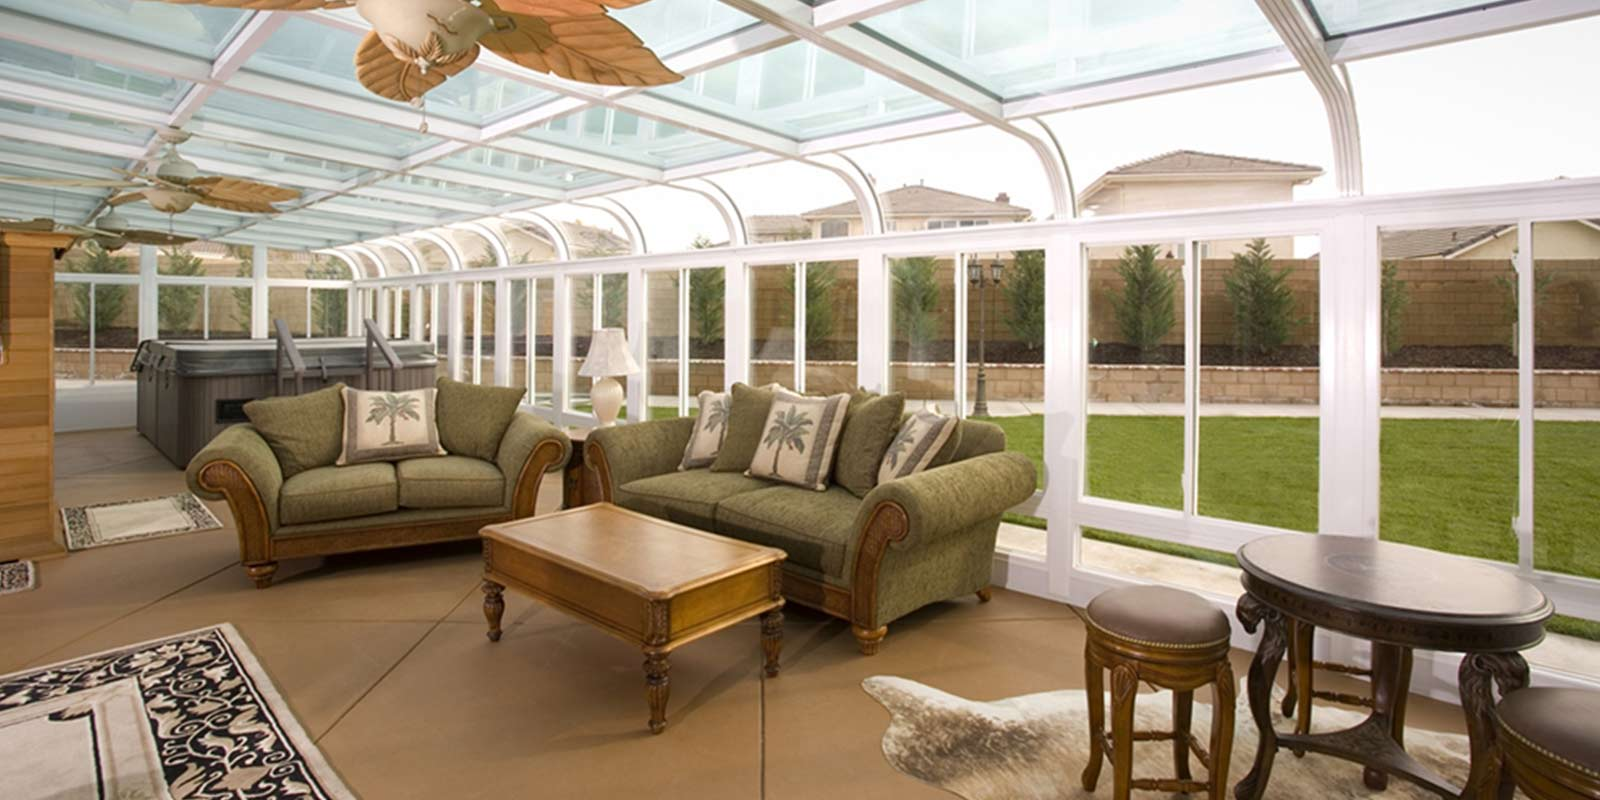 Sunroom  Conservatory  All Season Room  CThru Sunrooms